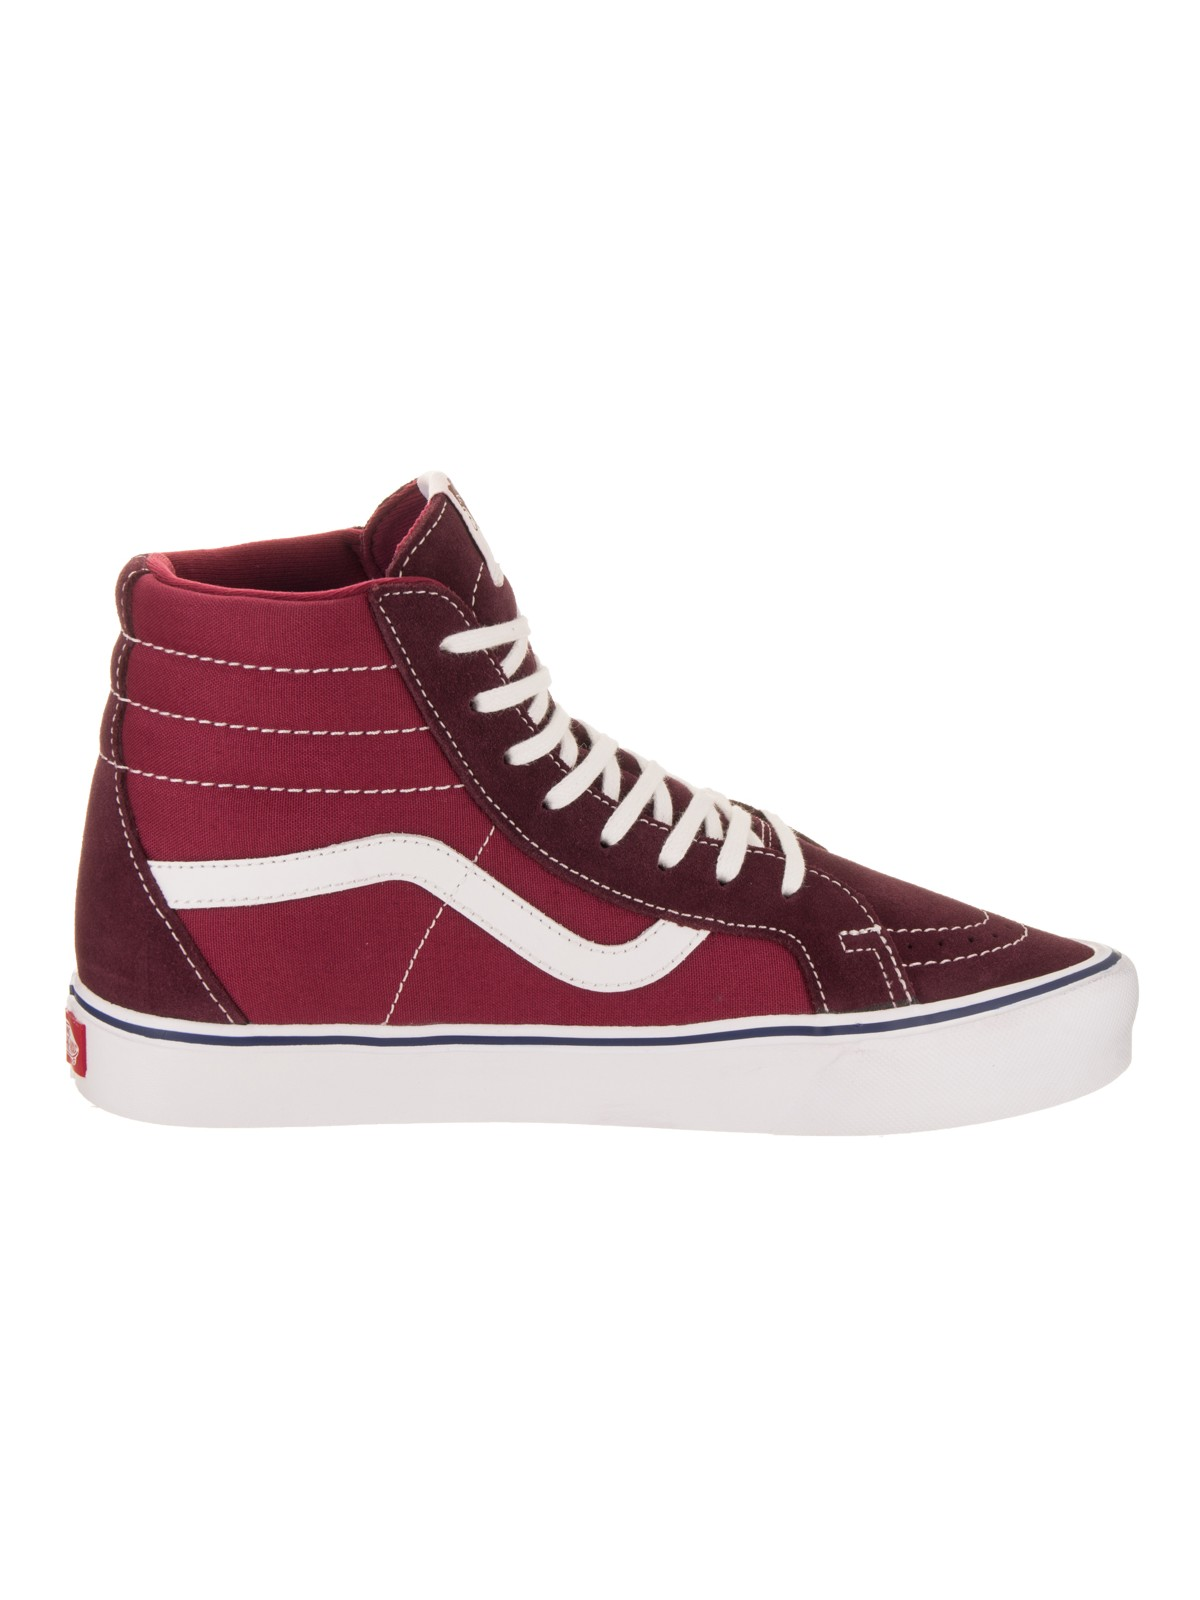 Vans (Throwback) Unisex Sk8-Hi Reissue Li (Throwback) Vans Skate Shoe d4500b